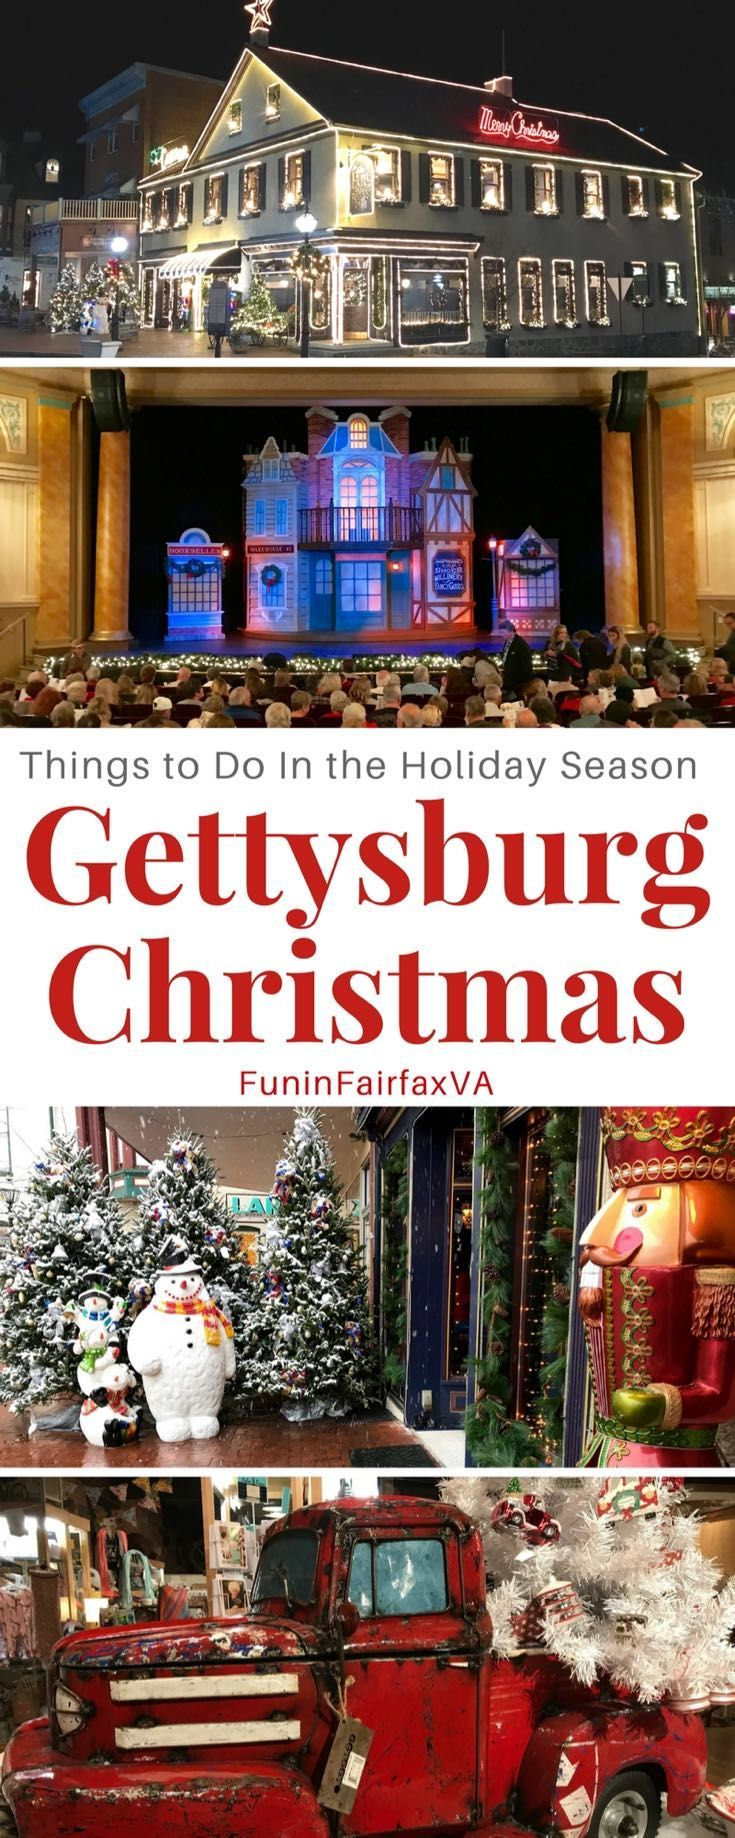 Gettysburg Pennsylvania US Holiday Travel   A Gettysburg Christmas offers special holiday events, excellent shopping, andseasonal beauty to inspire a unique and fun Pennsylvania getaway. #pennsylvania #holiday #christmas #getaways